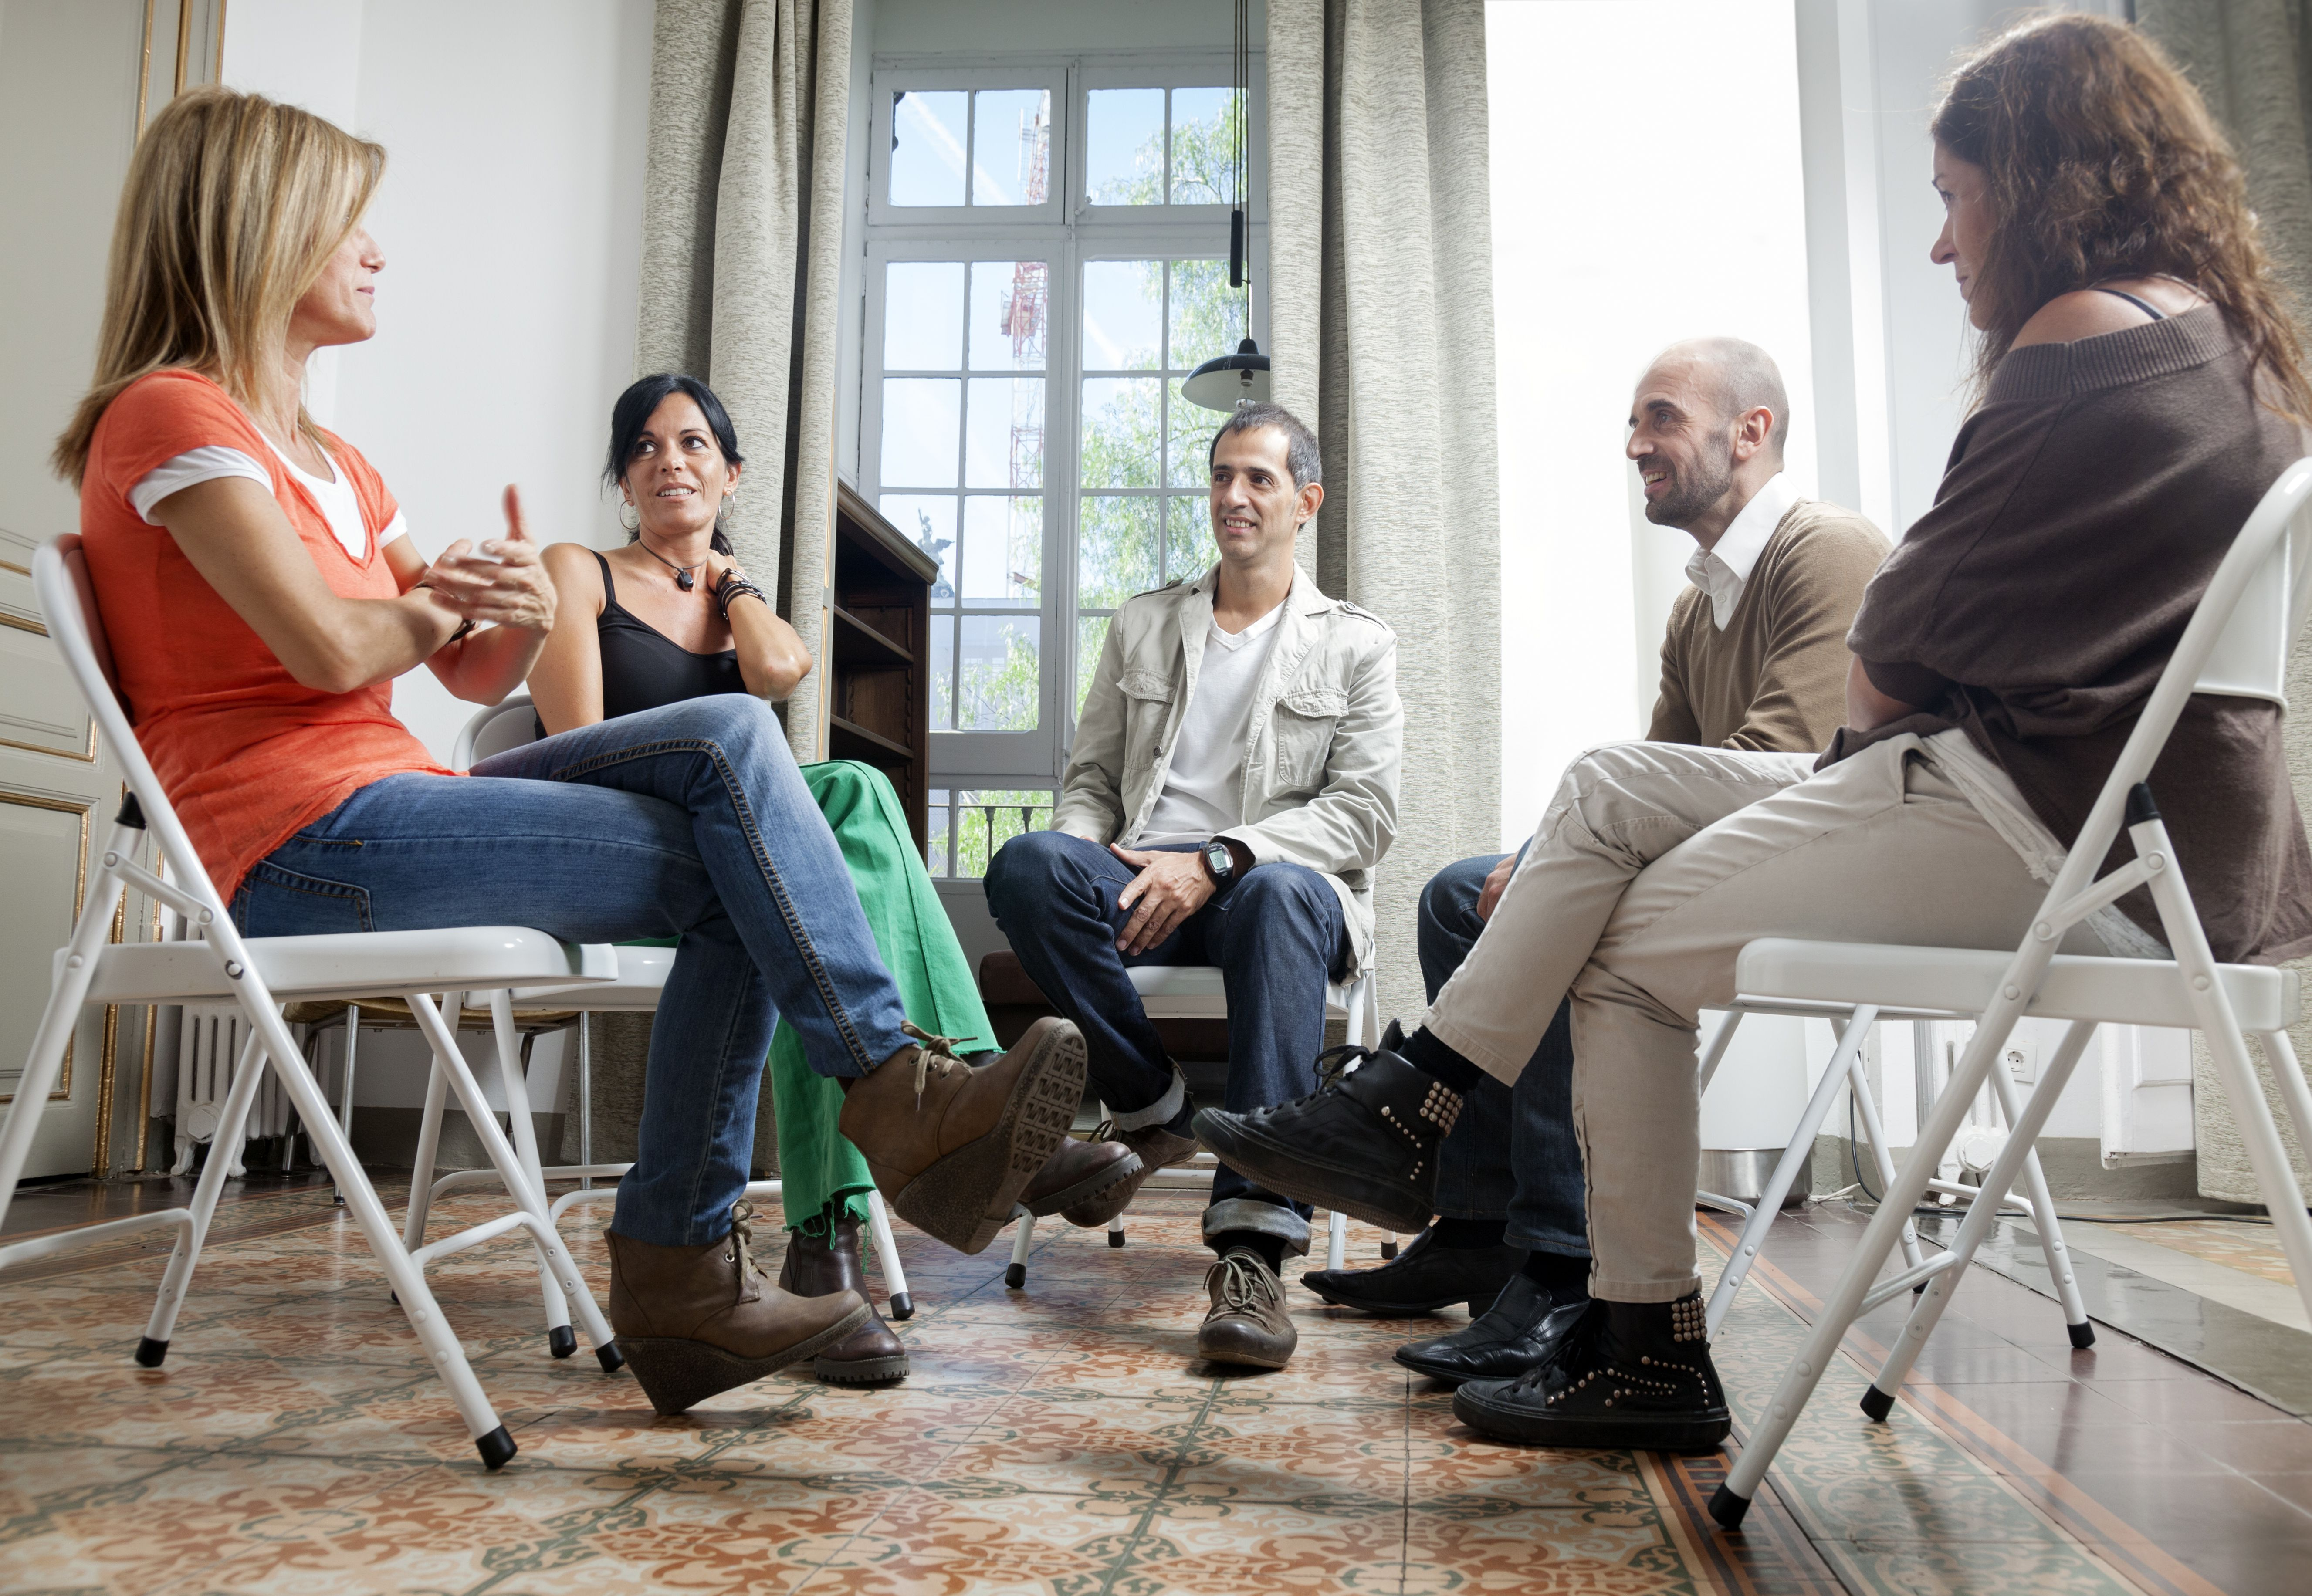 Group therapy at a substance abuse facility